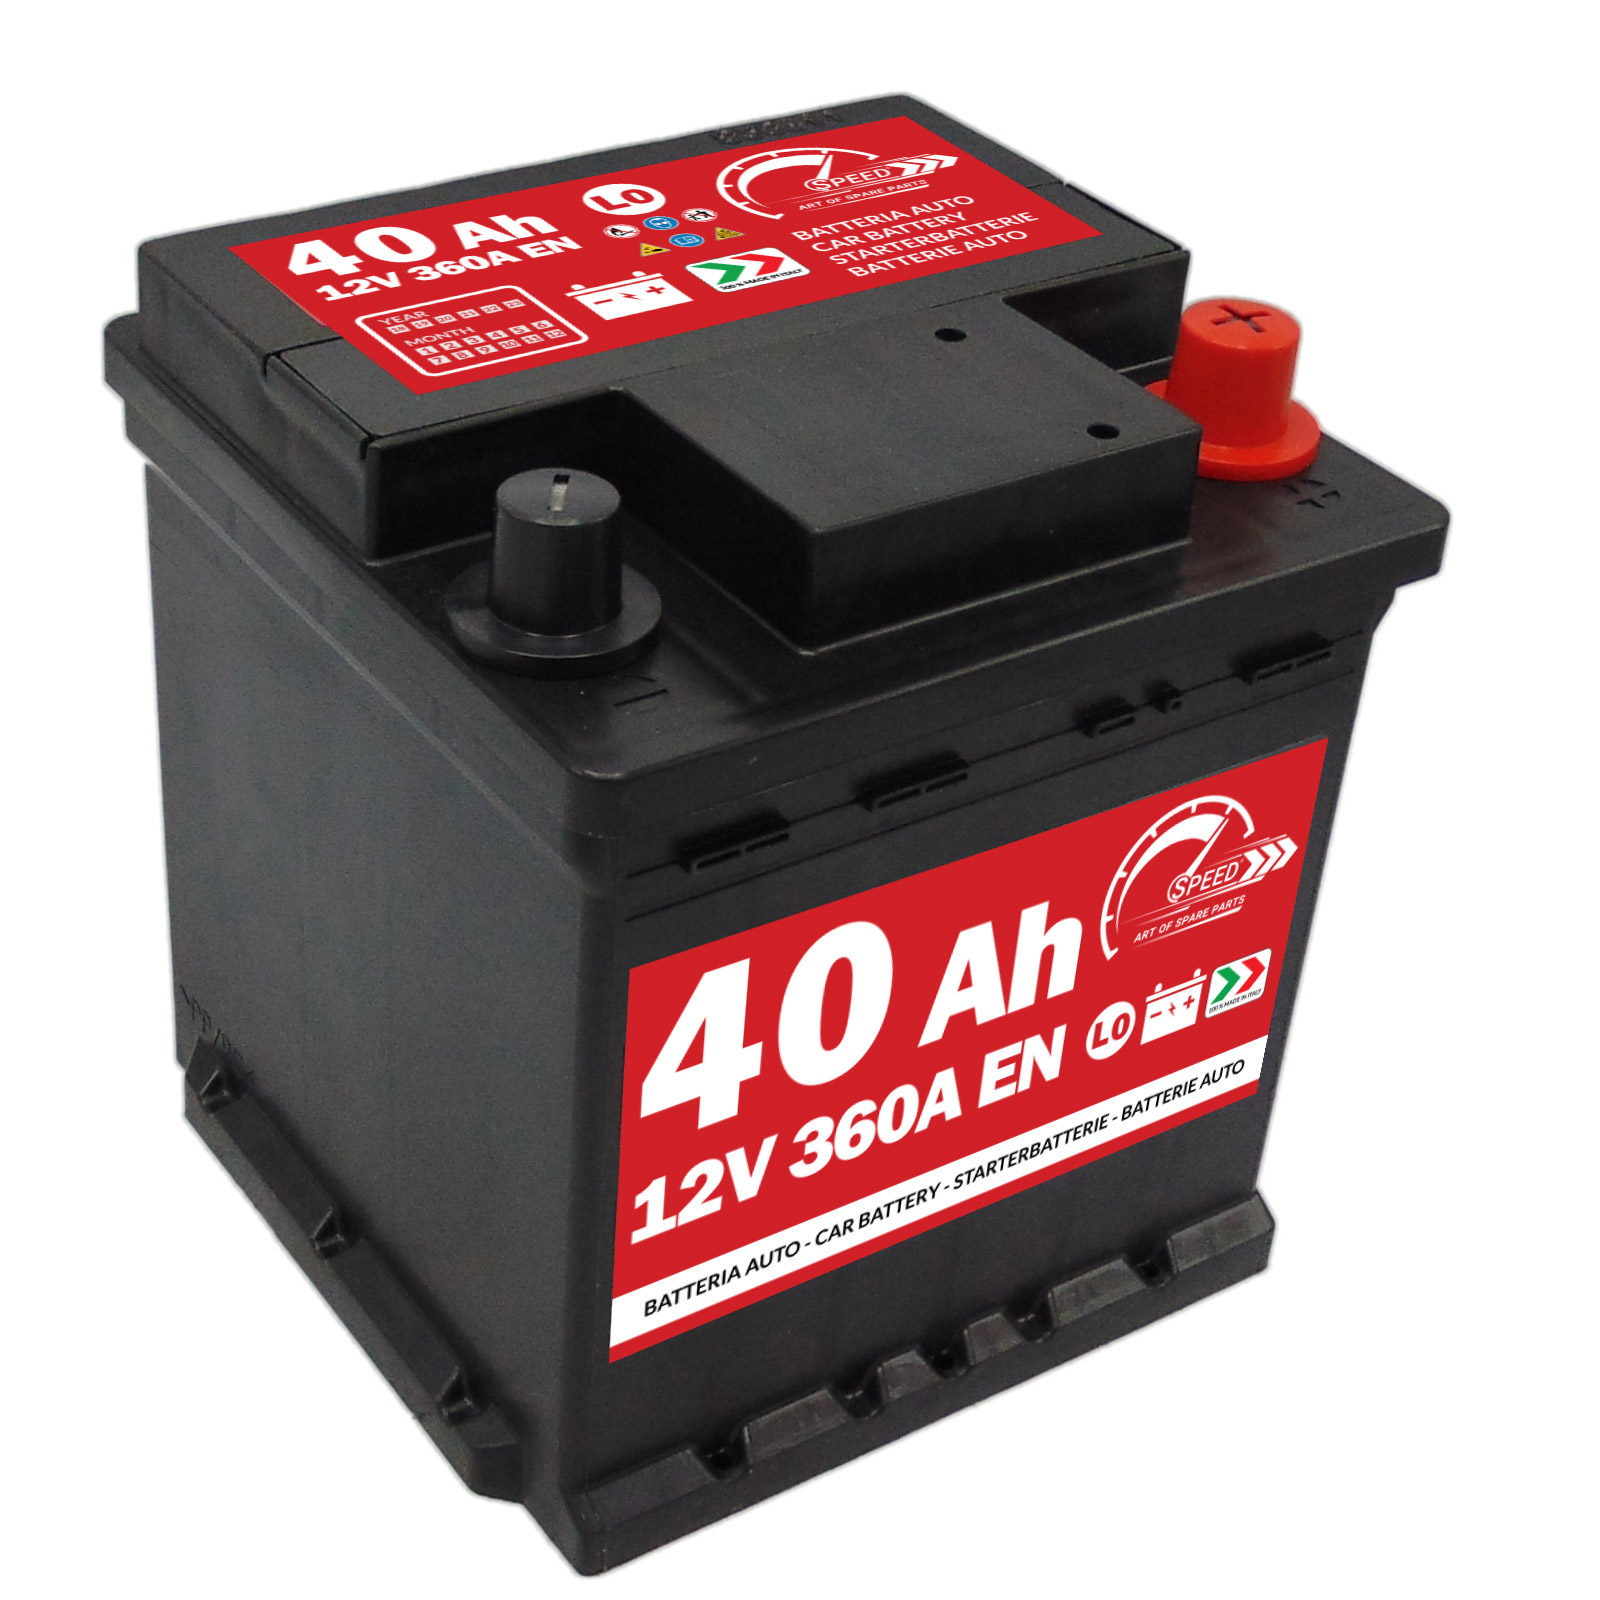 Starterbatterie Auto Speed L040 40Ah 360A 12V